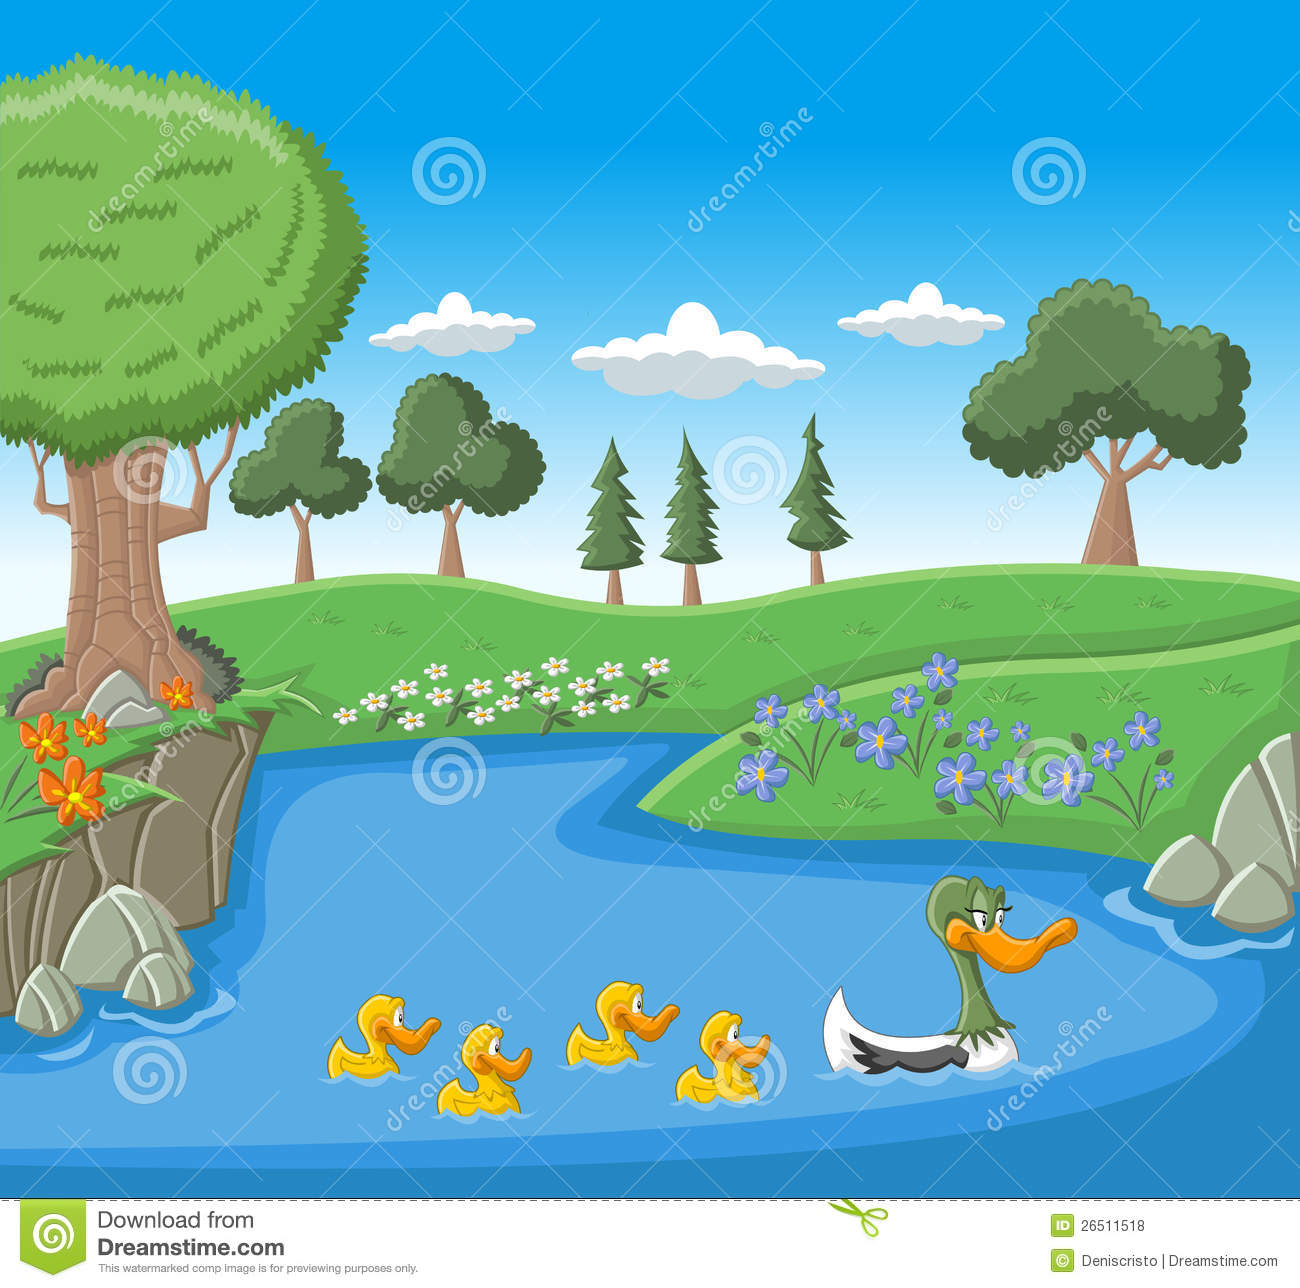 banner library stock Images clip art wallpapers. Lake clipart.